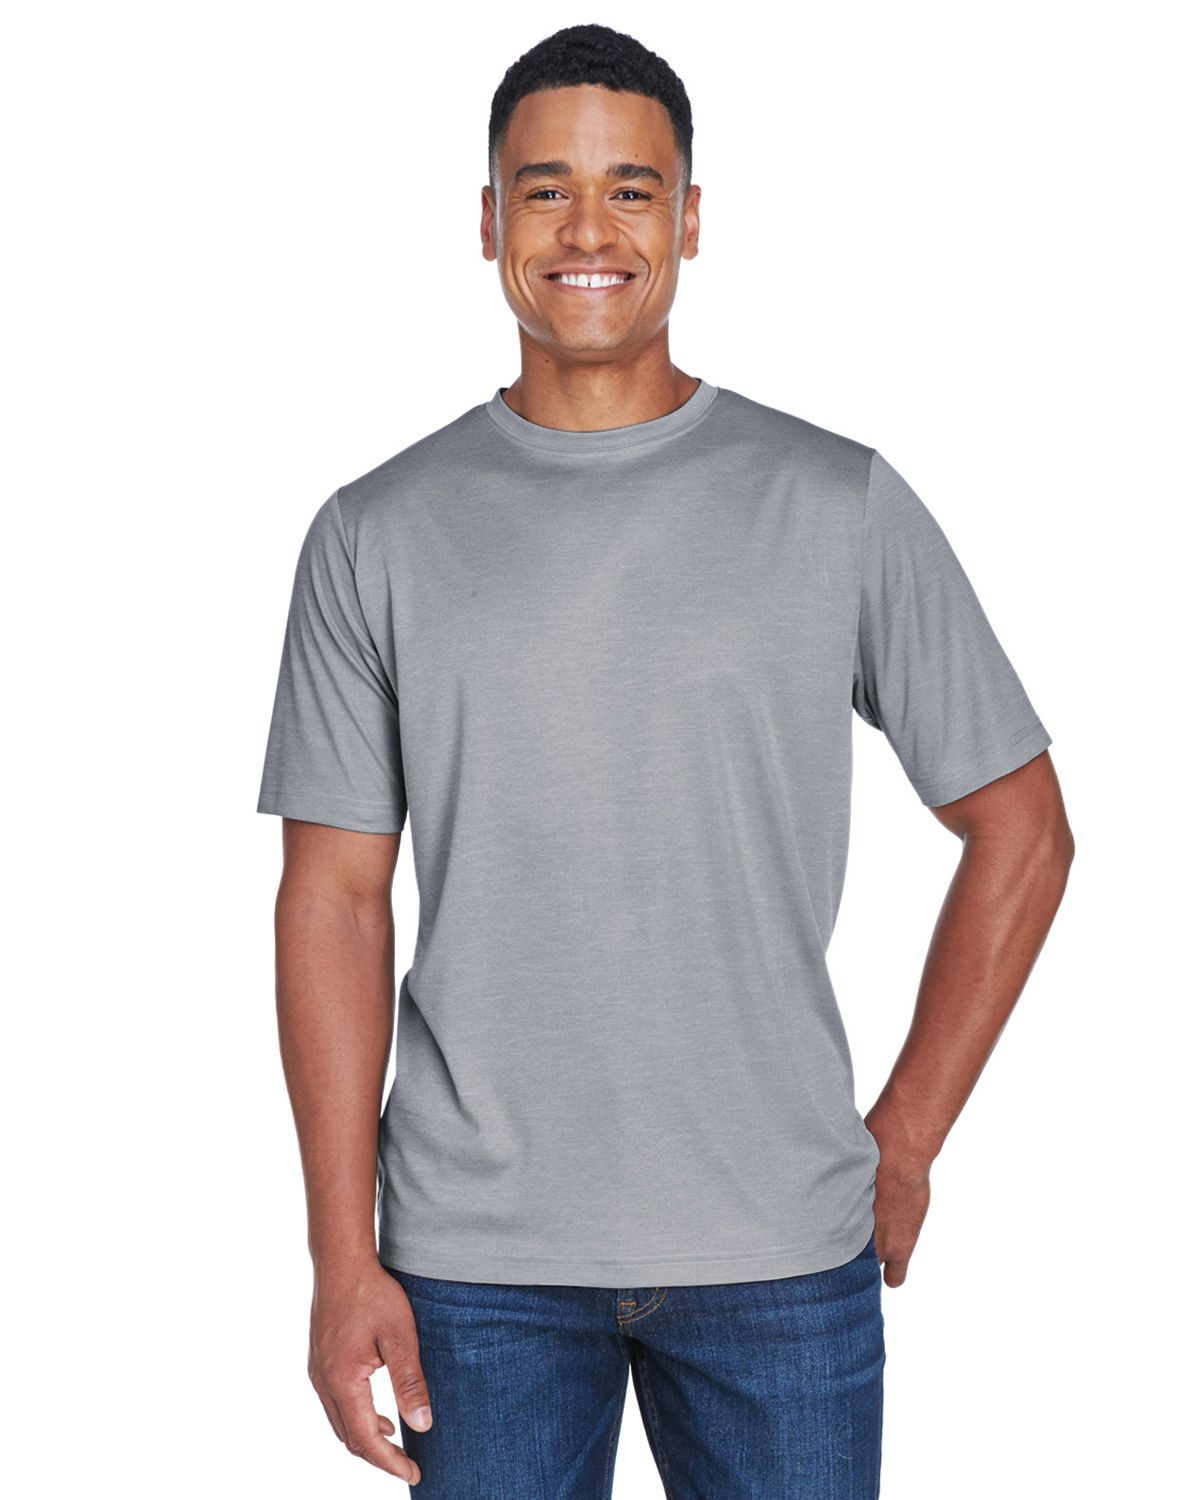 079fd2d9 Team 365 TT11H Mens Sonic Heather Performance T-Shirt